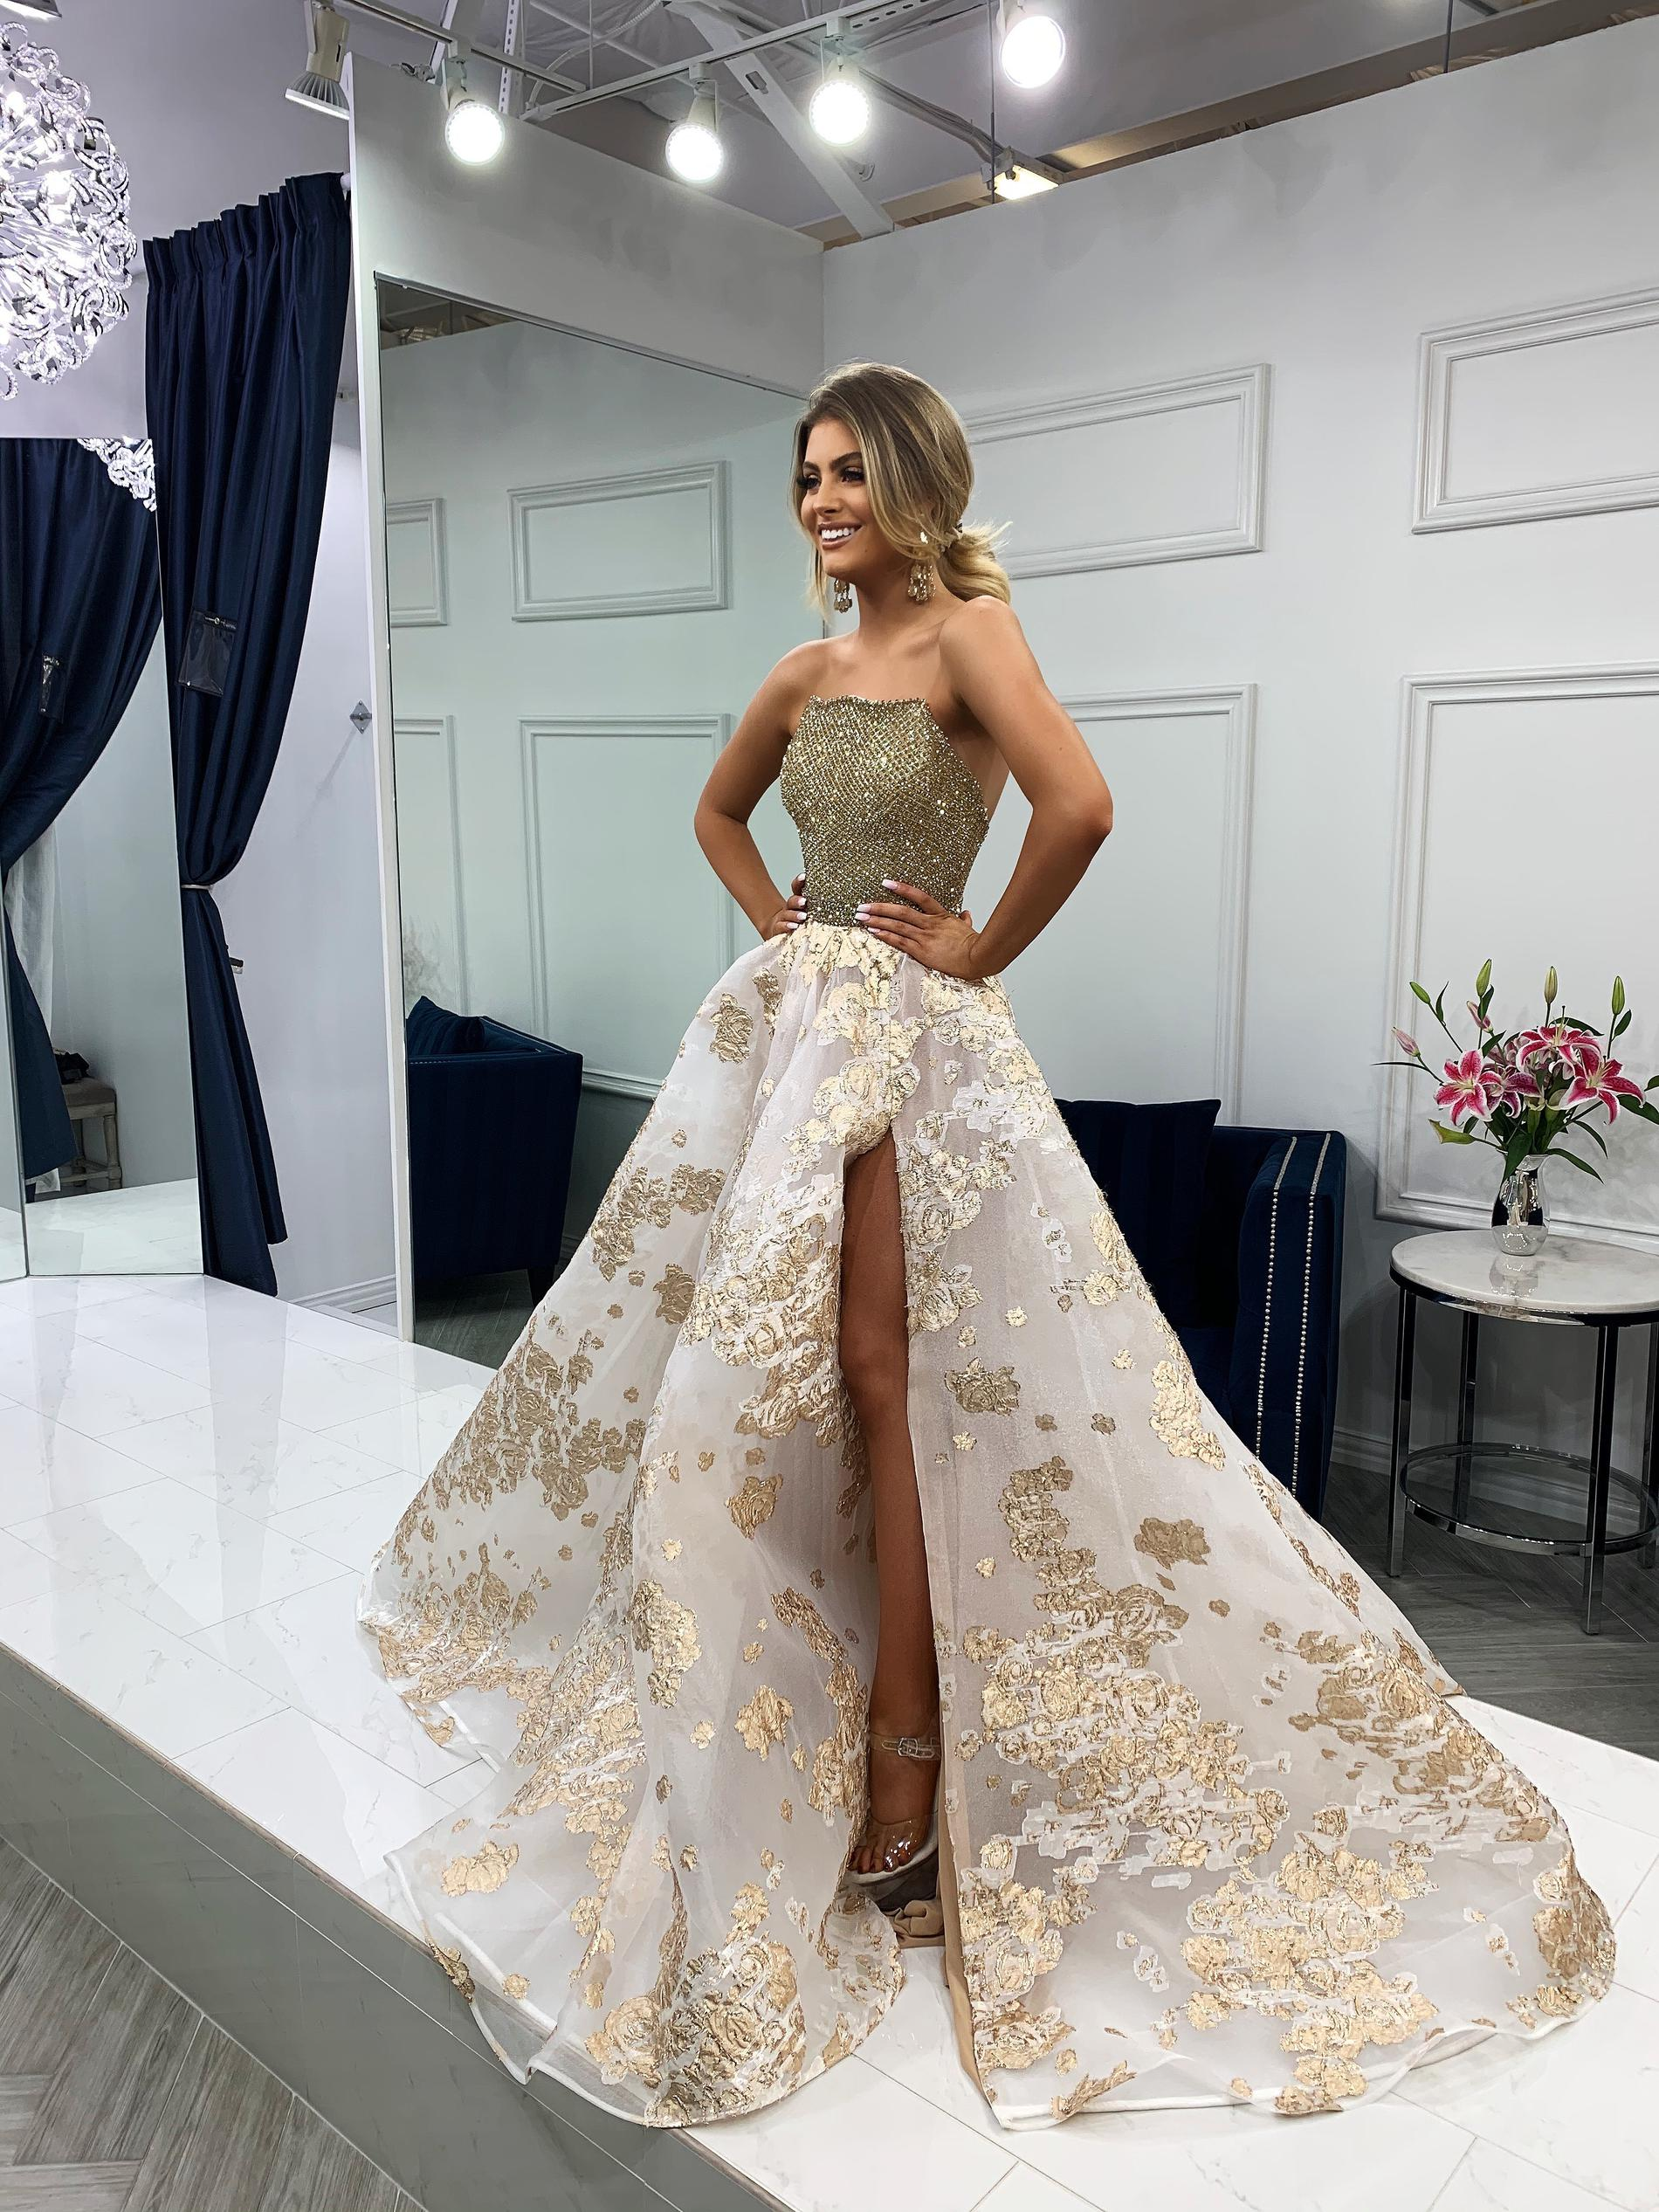 Sherri Hill Gold Size 00 Floral Prom Side slit Dress on Queenly